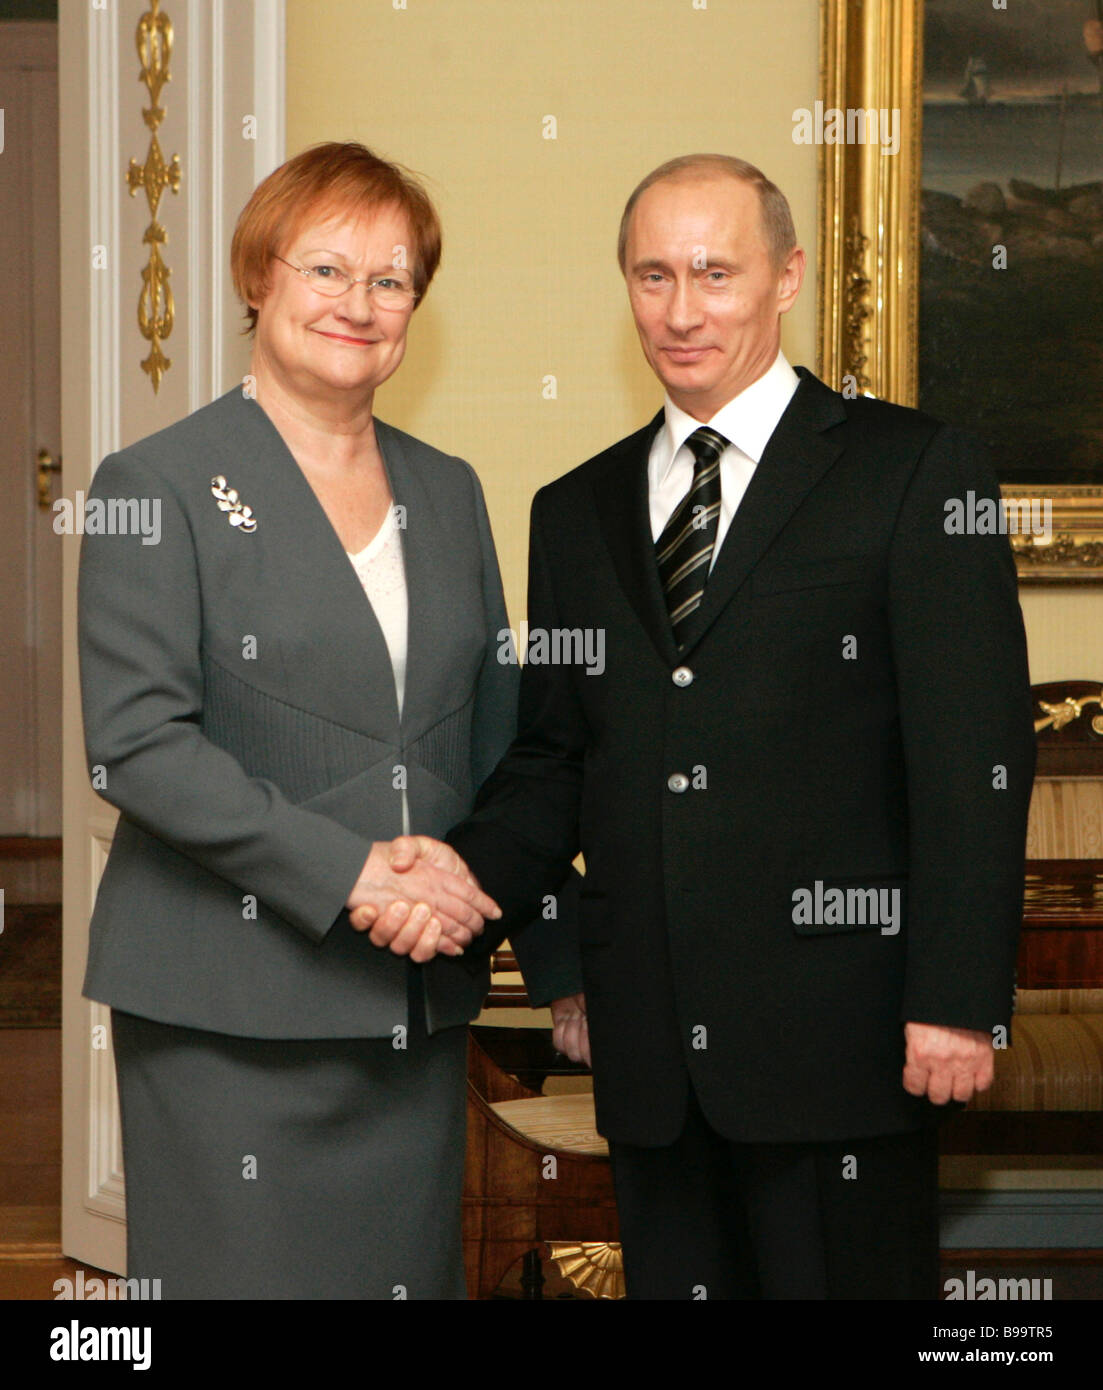 Presidents Tarja Halonen of Finland and Vladimir Putin of Russia meet in  the Presidential Palace in Helsinki 7aee36add7